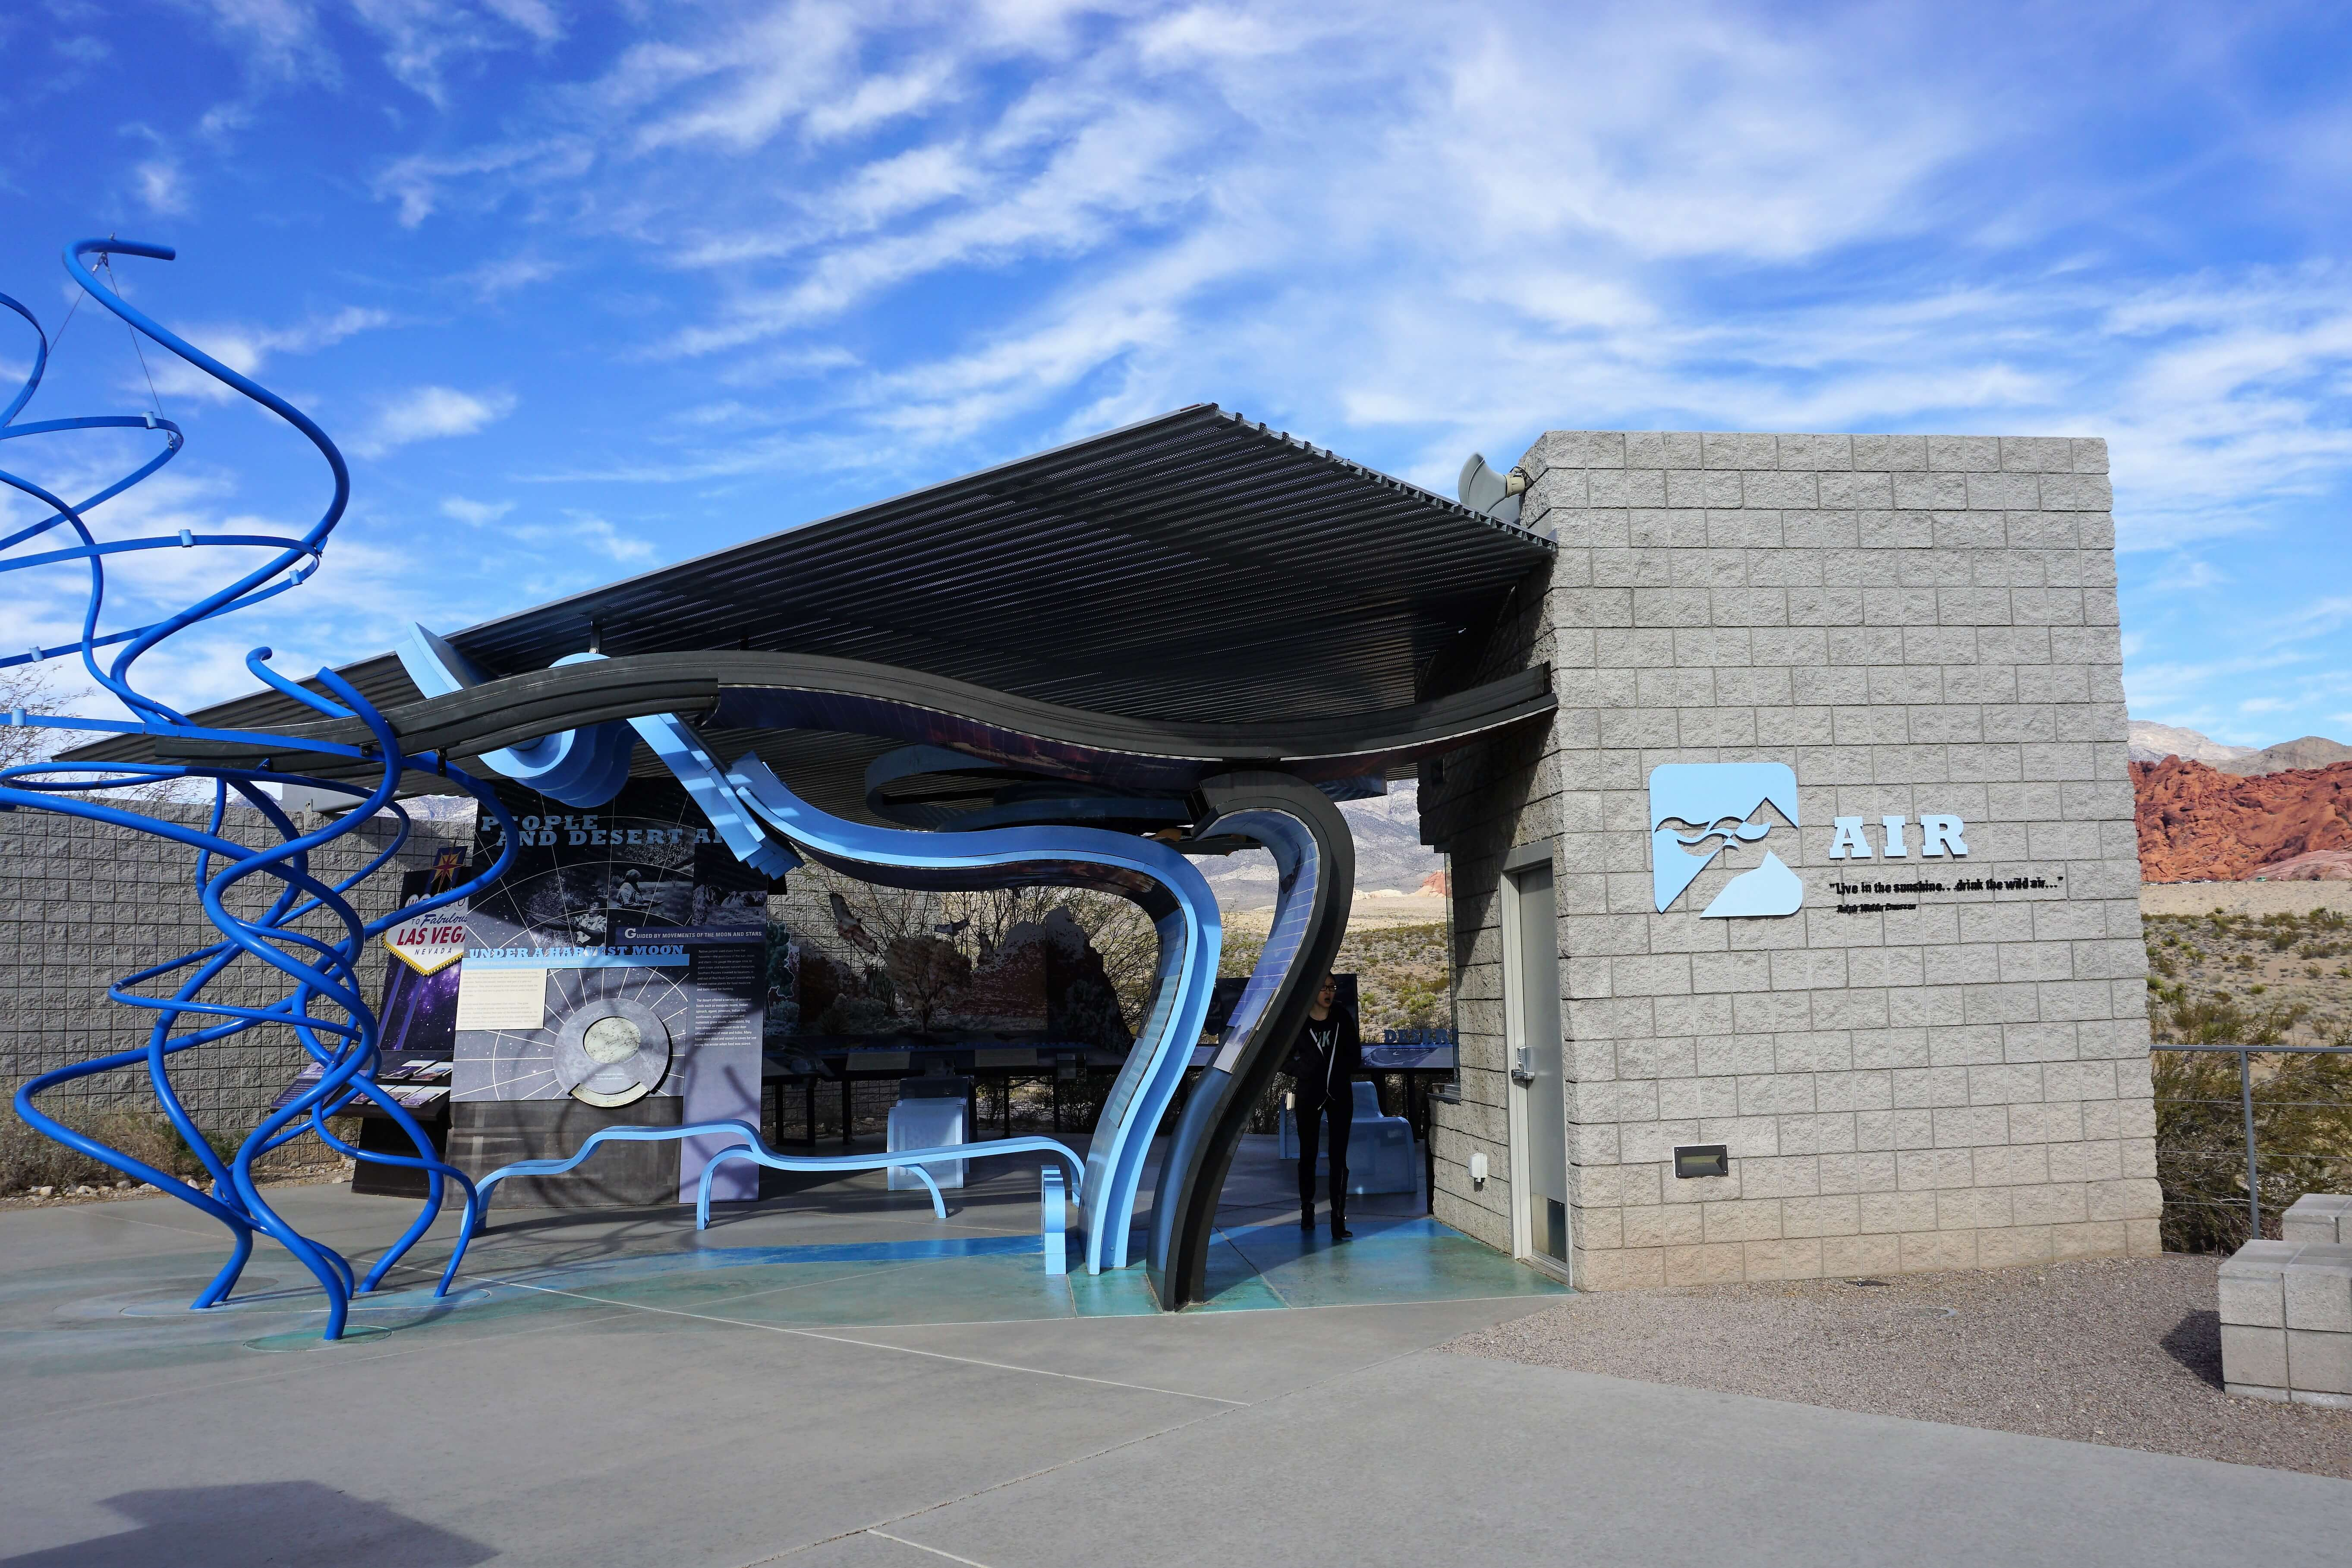 Outdoor exhibit at the Red Rock Canyon Visitor's Center